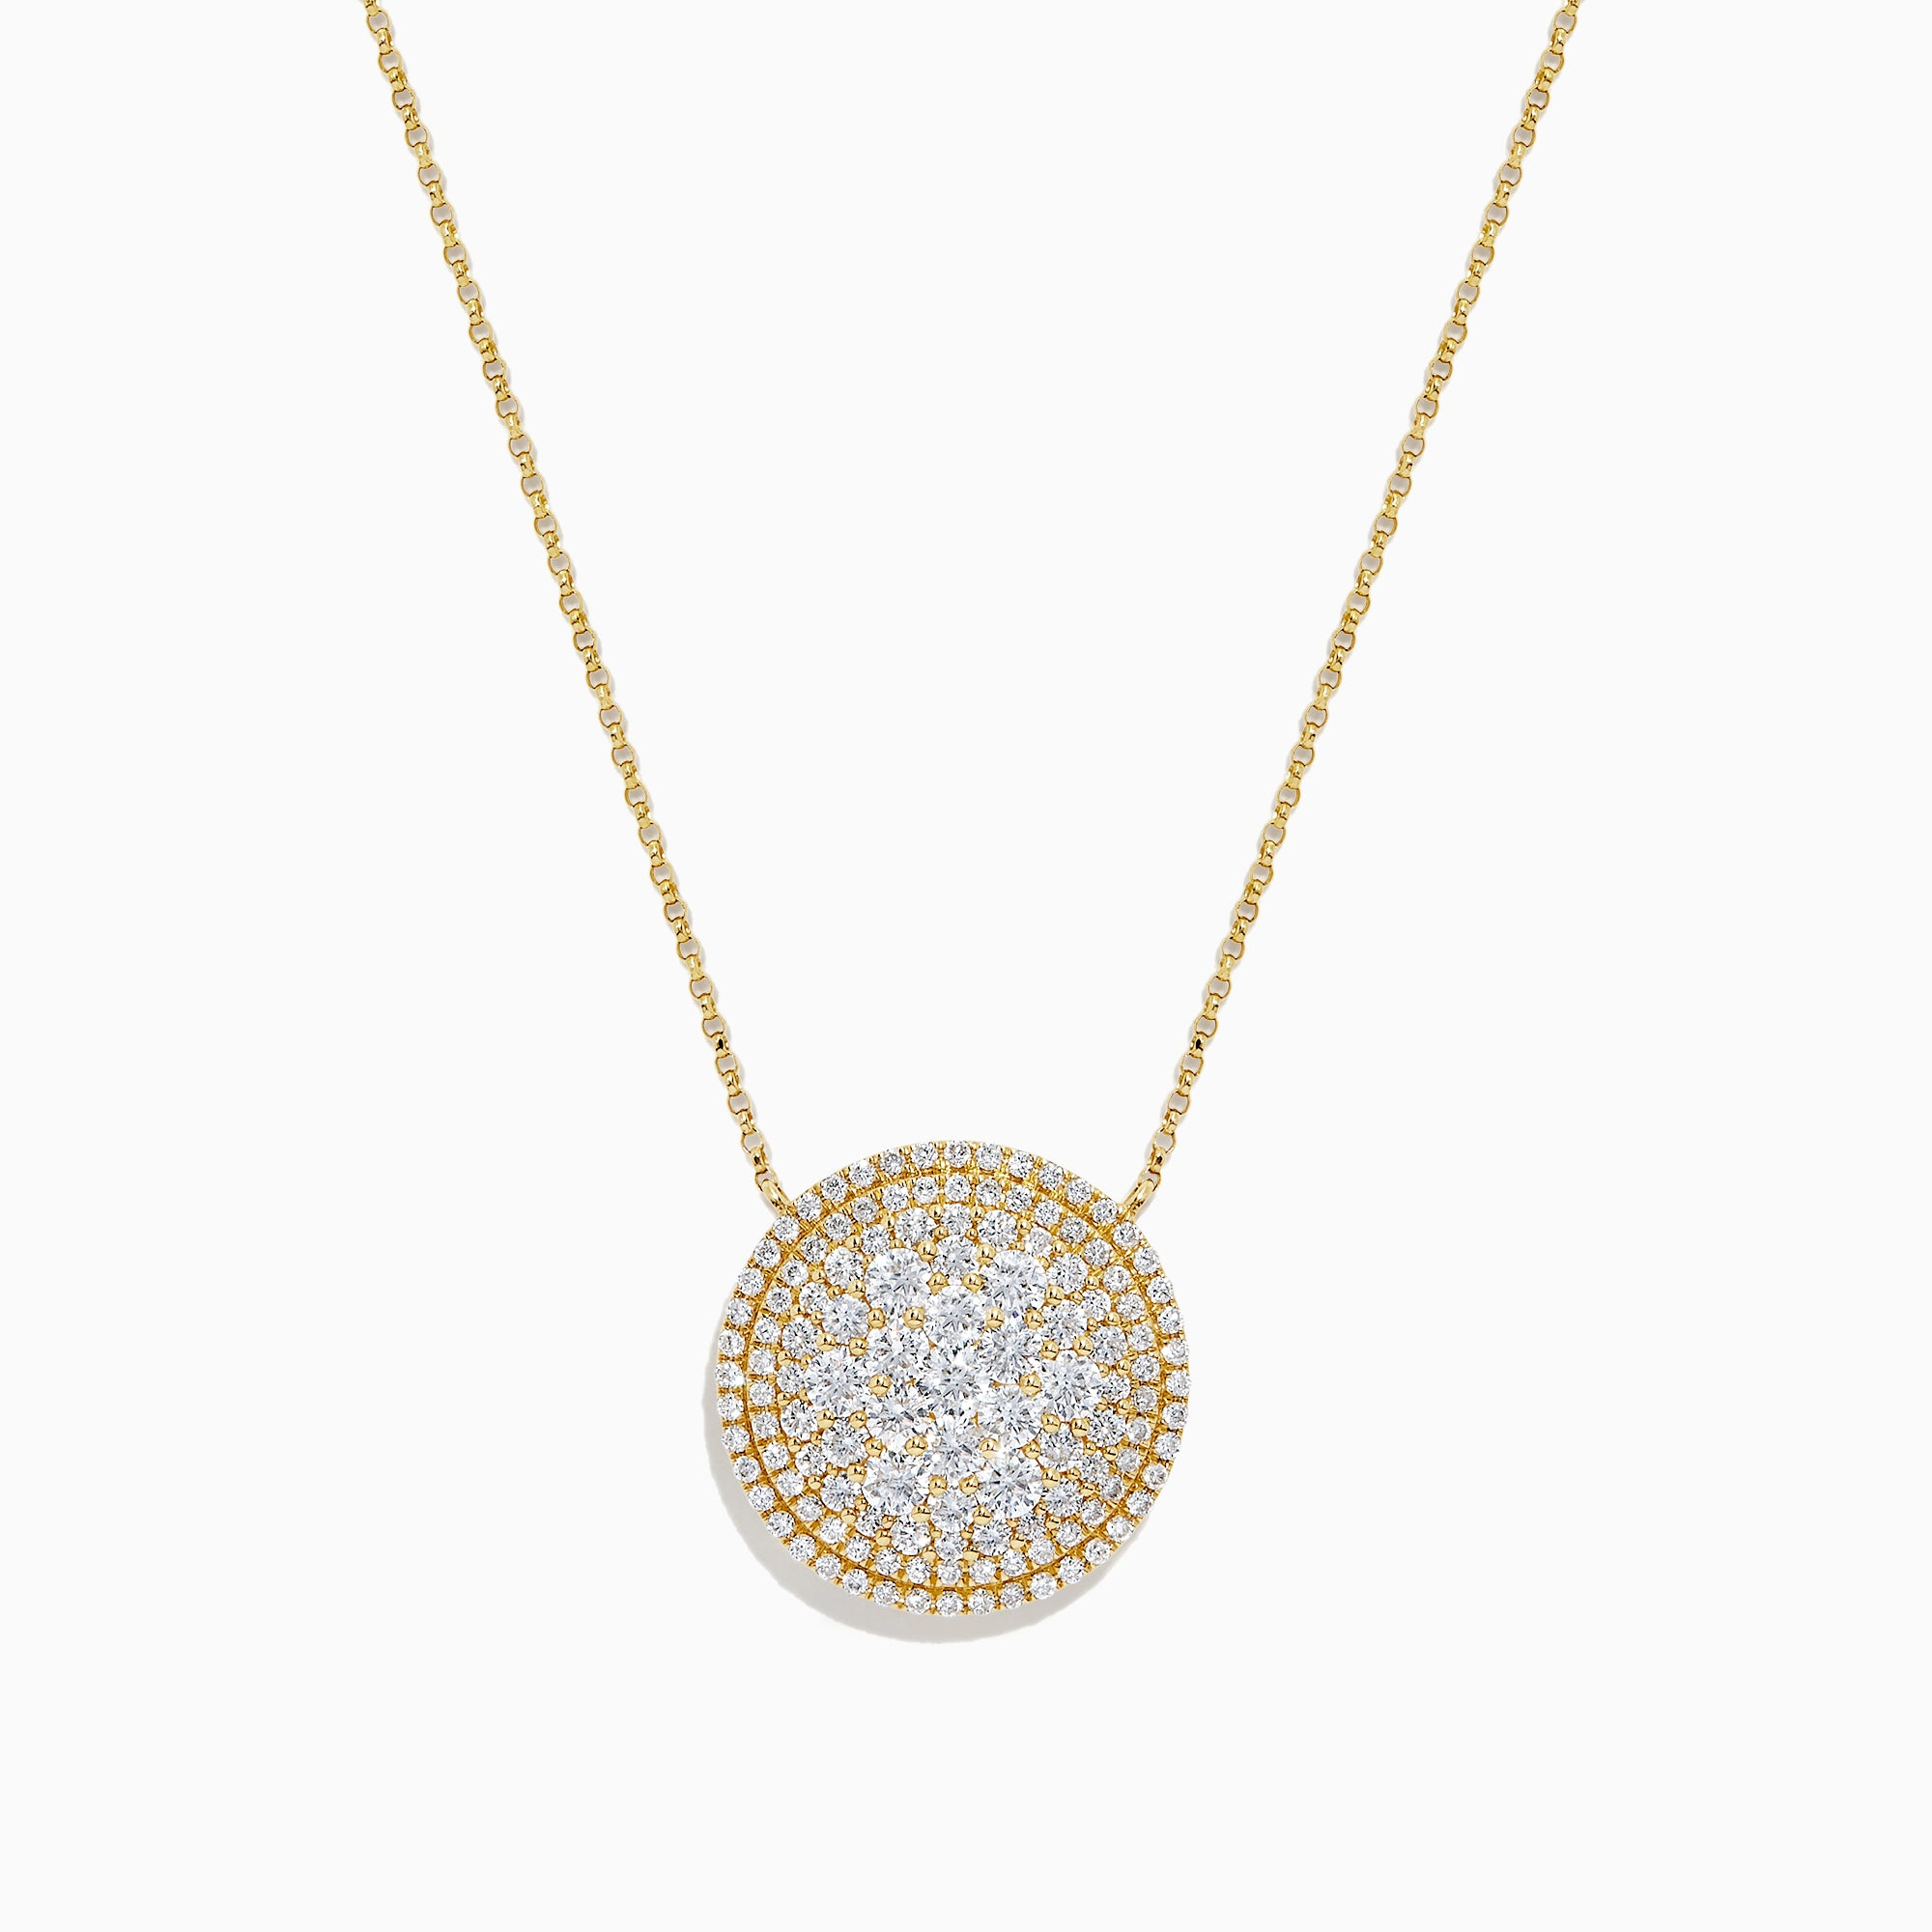 Effy D'Oro 14K Yellow Gold Diamond Pave Disk Necklace, 2.16 TCW